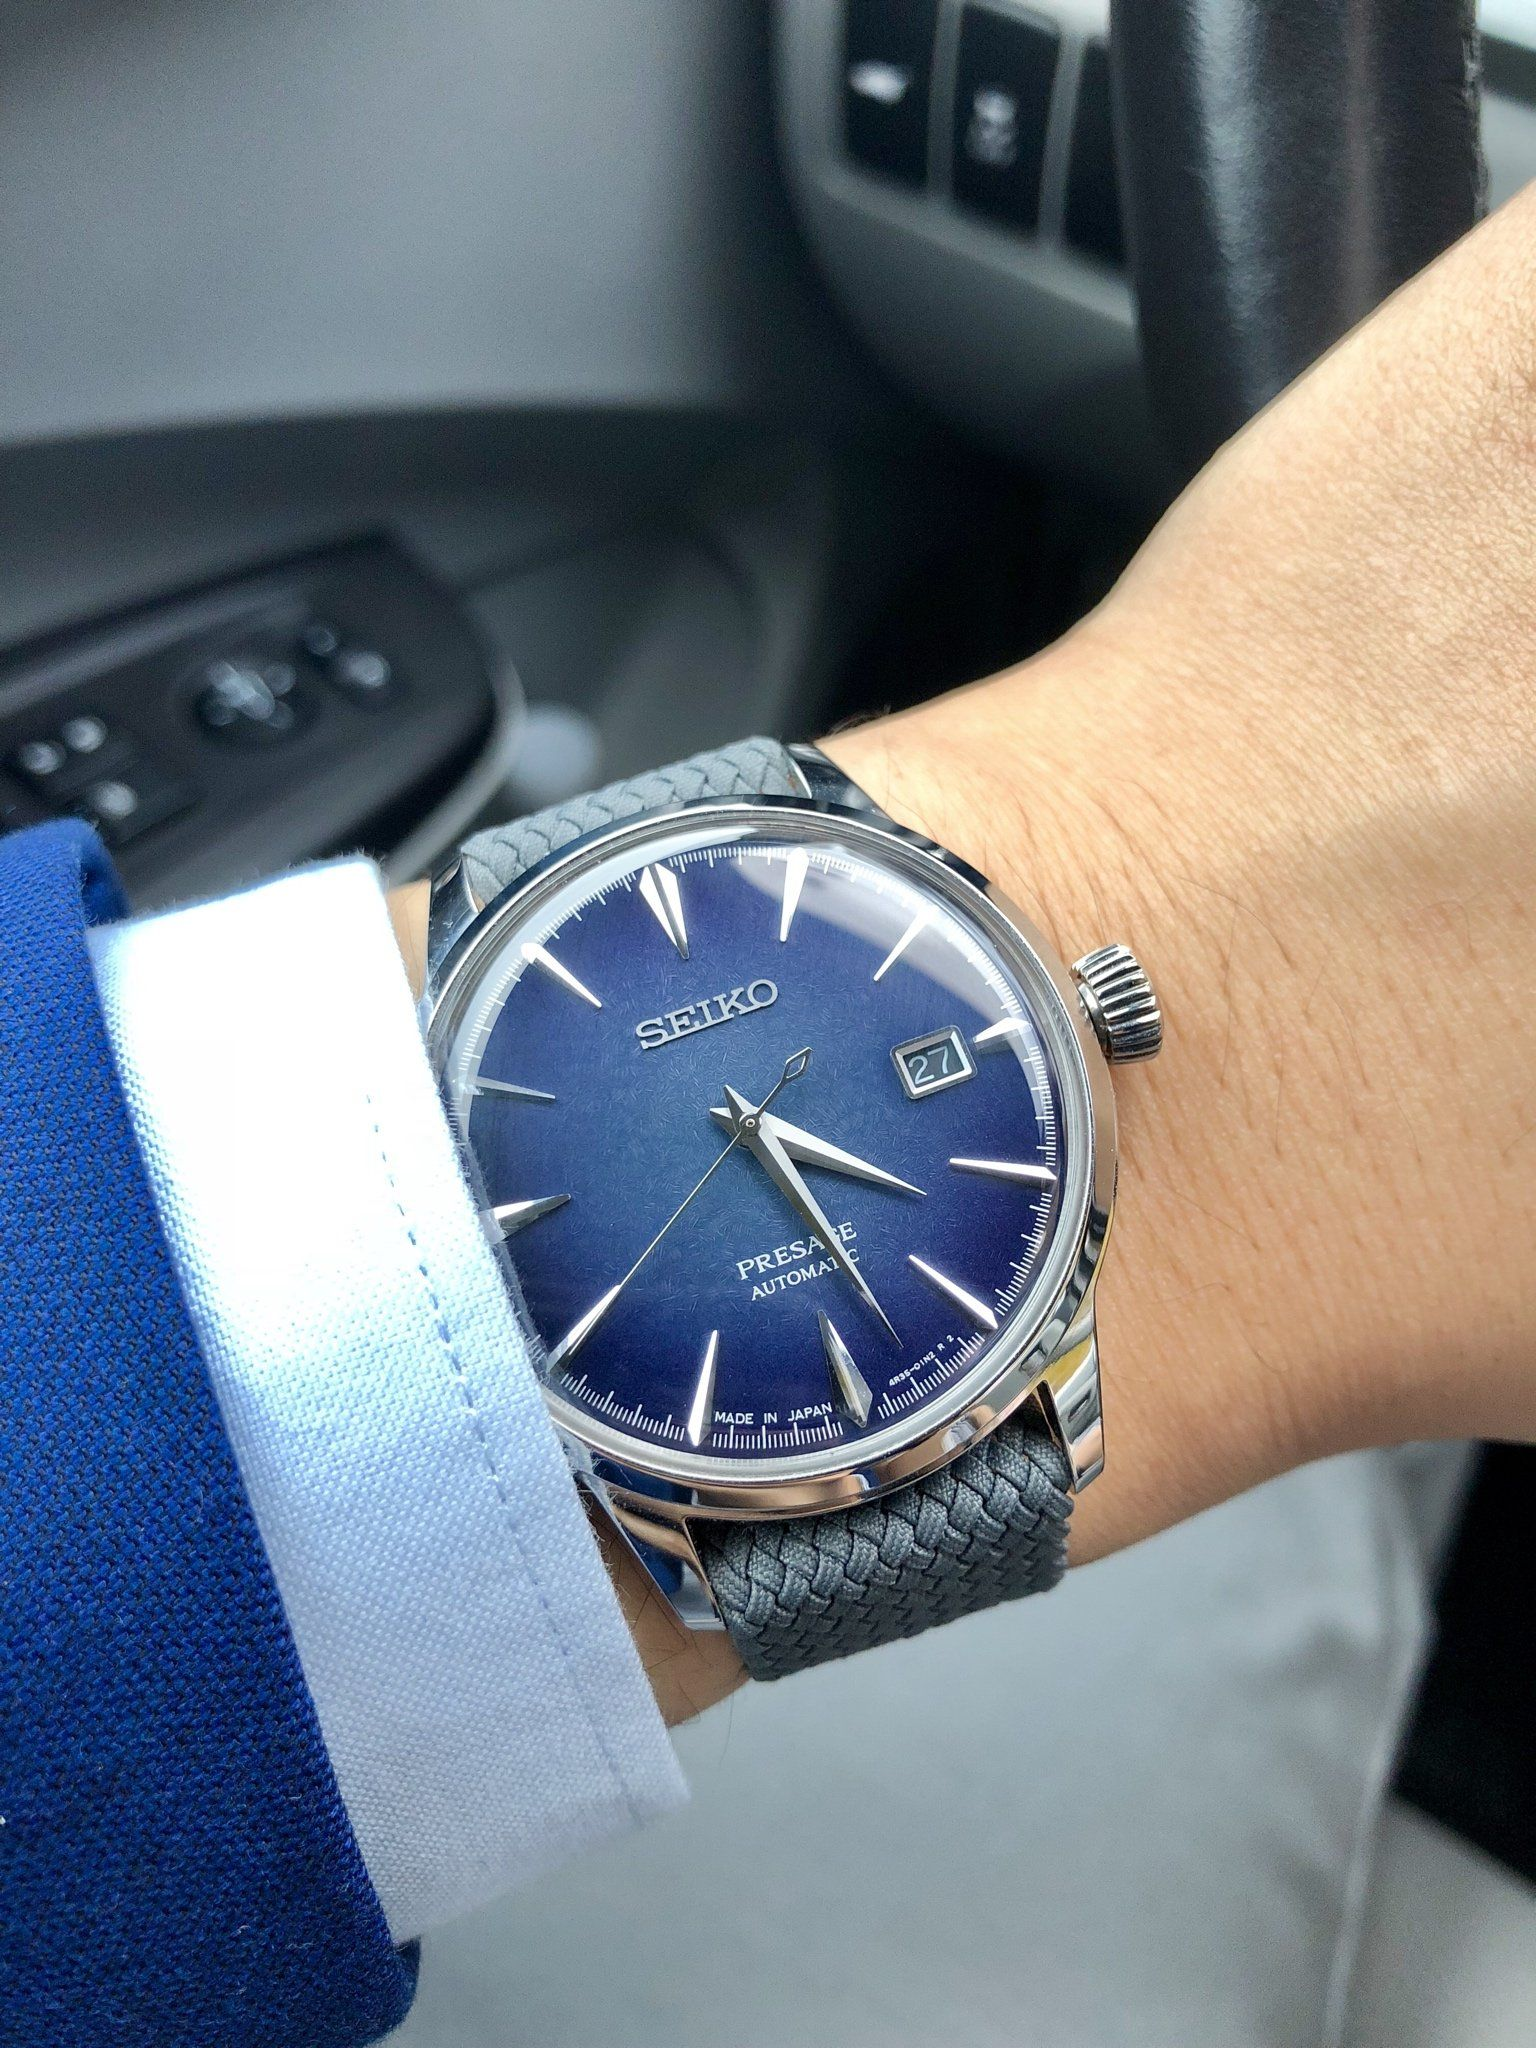 Seiko] starlight in the sun : Watches | Best looking watches